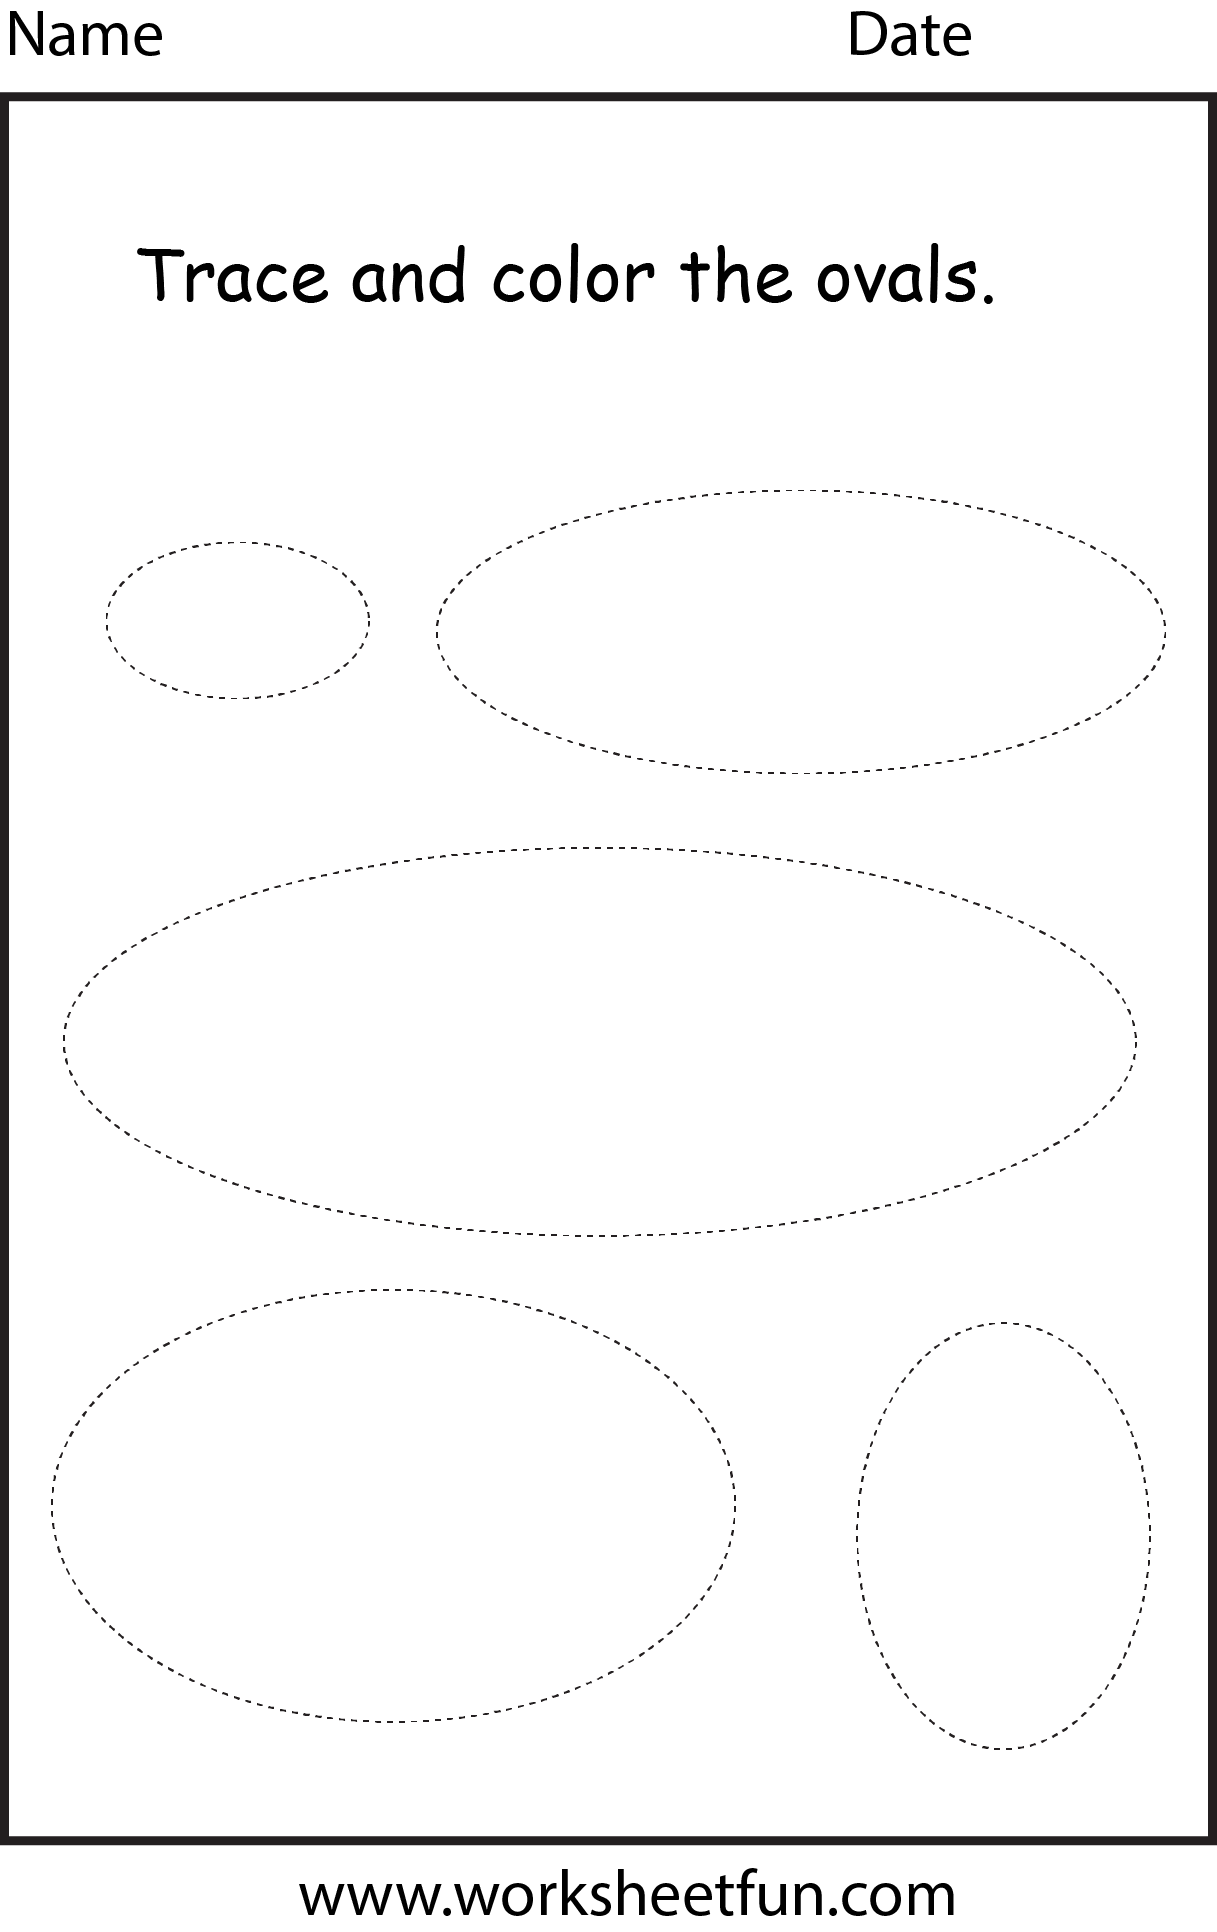 Colouring shapes activities - Shapes Oval